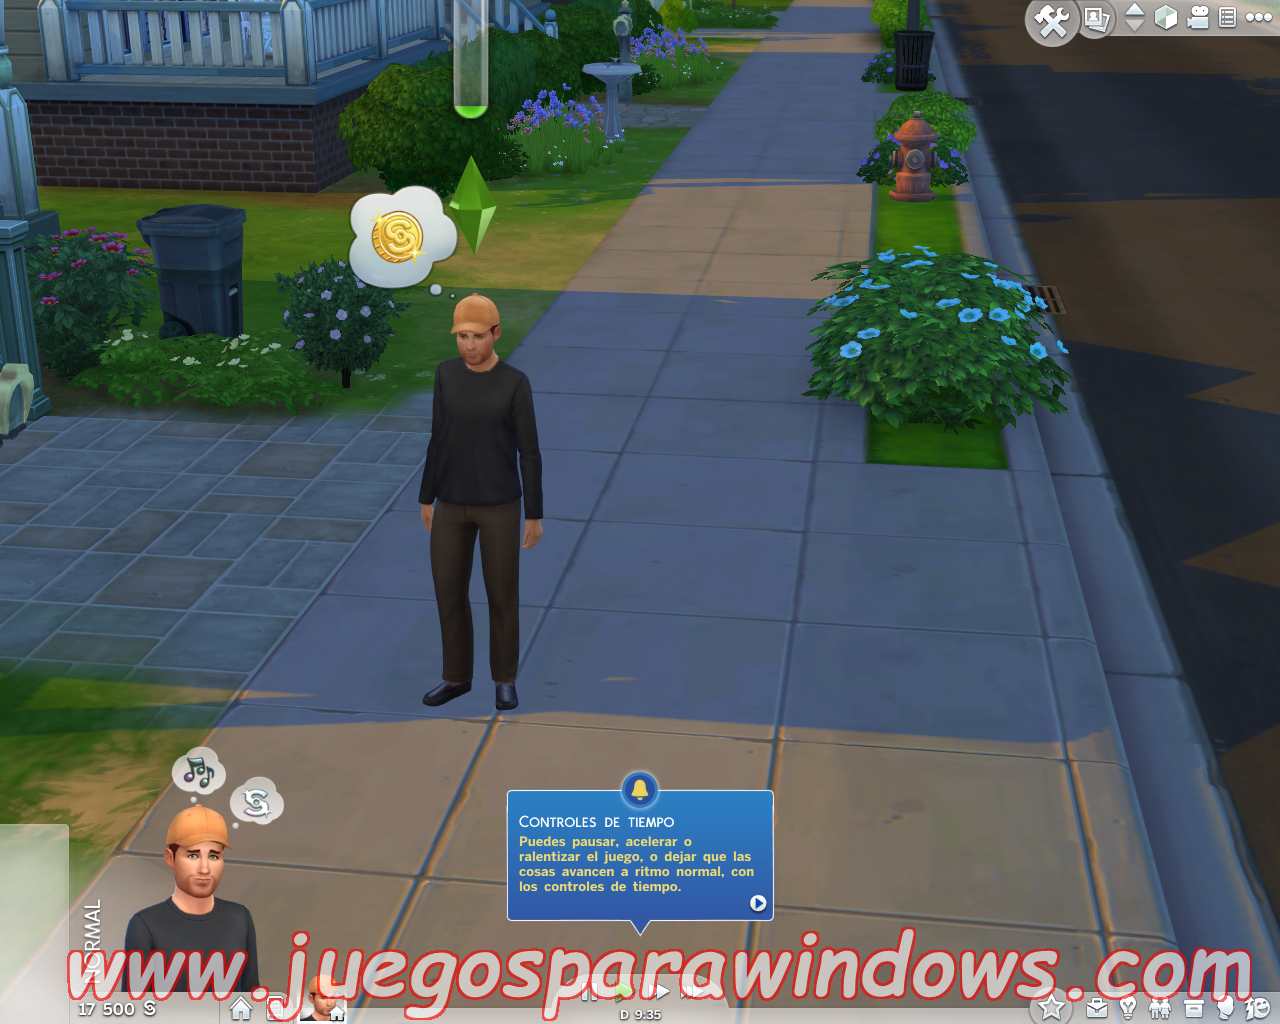 Los Sims 4 Digital Deluxe Edition ESPAÑOL PC Full + Update v1.4.83.1010 Incl DLC (RELOADED) 20